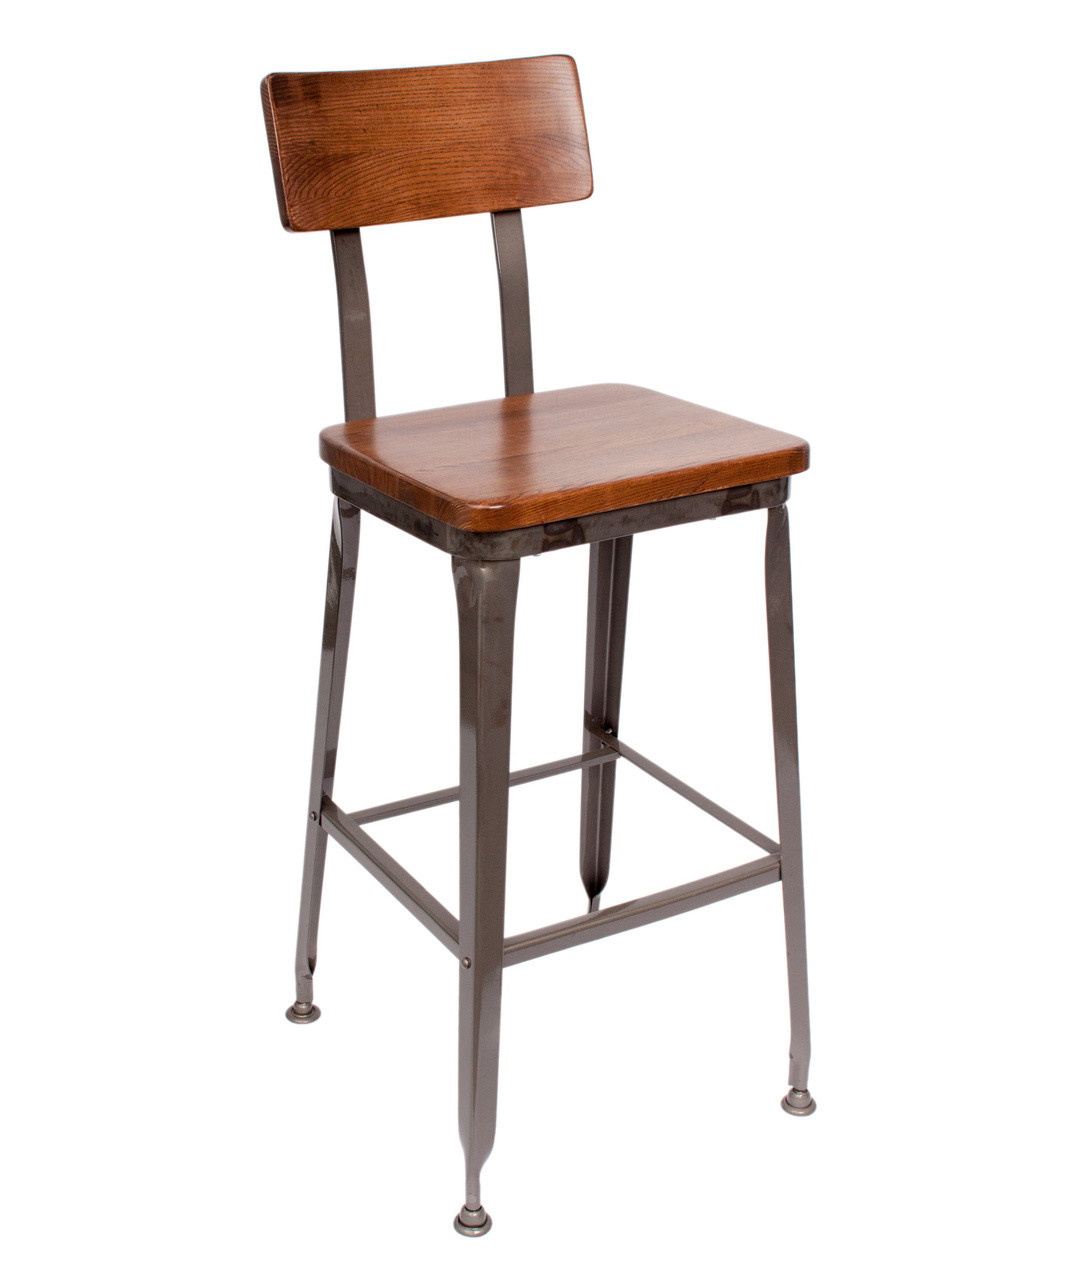 Pleasant Industrial Metal Stool Caraccident5 Cool Chair Designs And Ideas Caraccident5Info